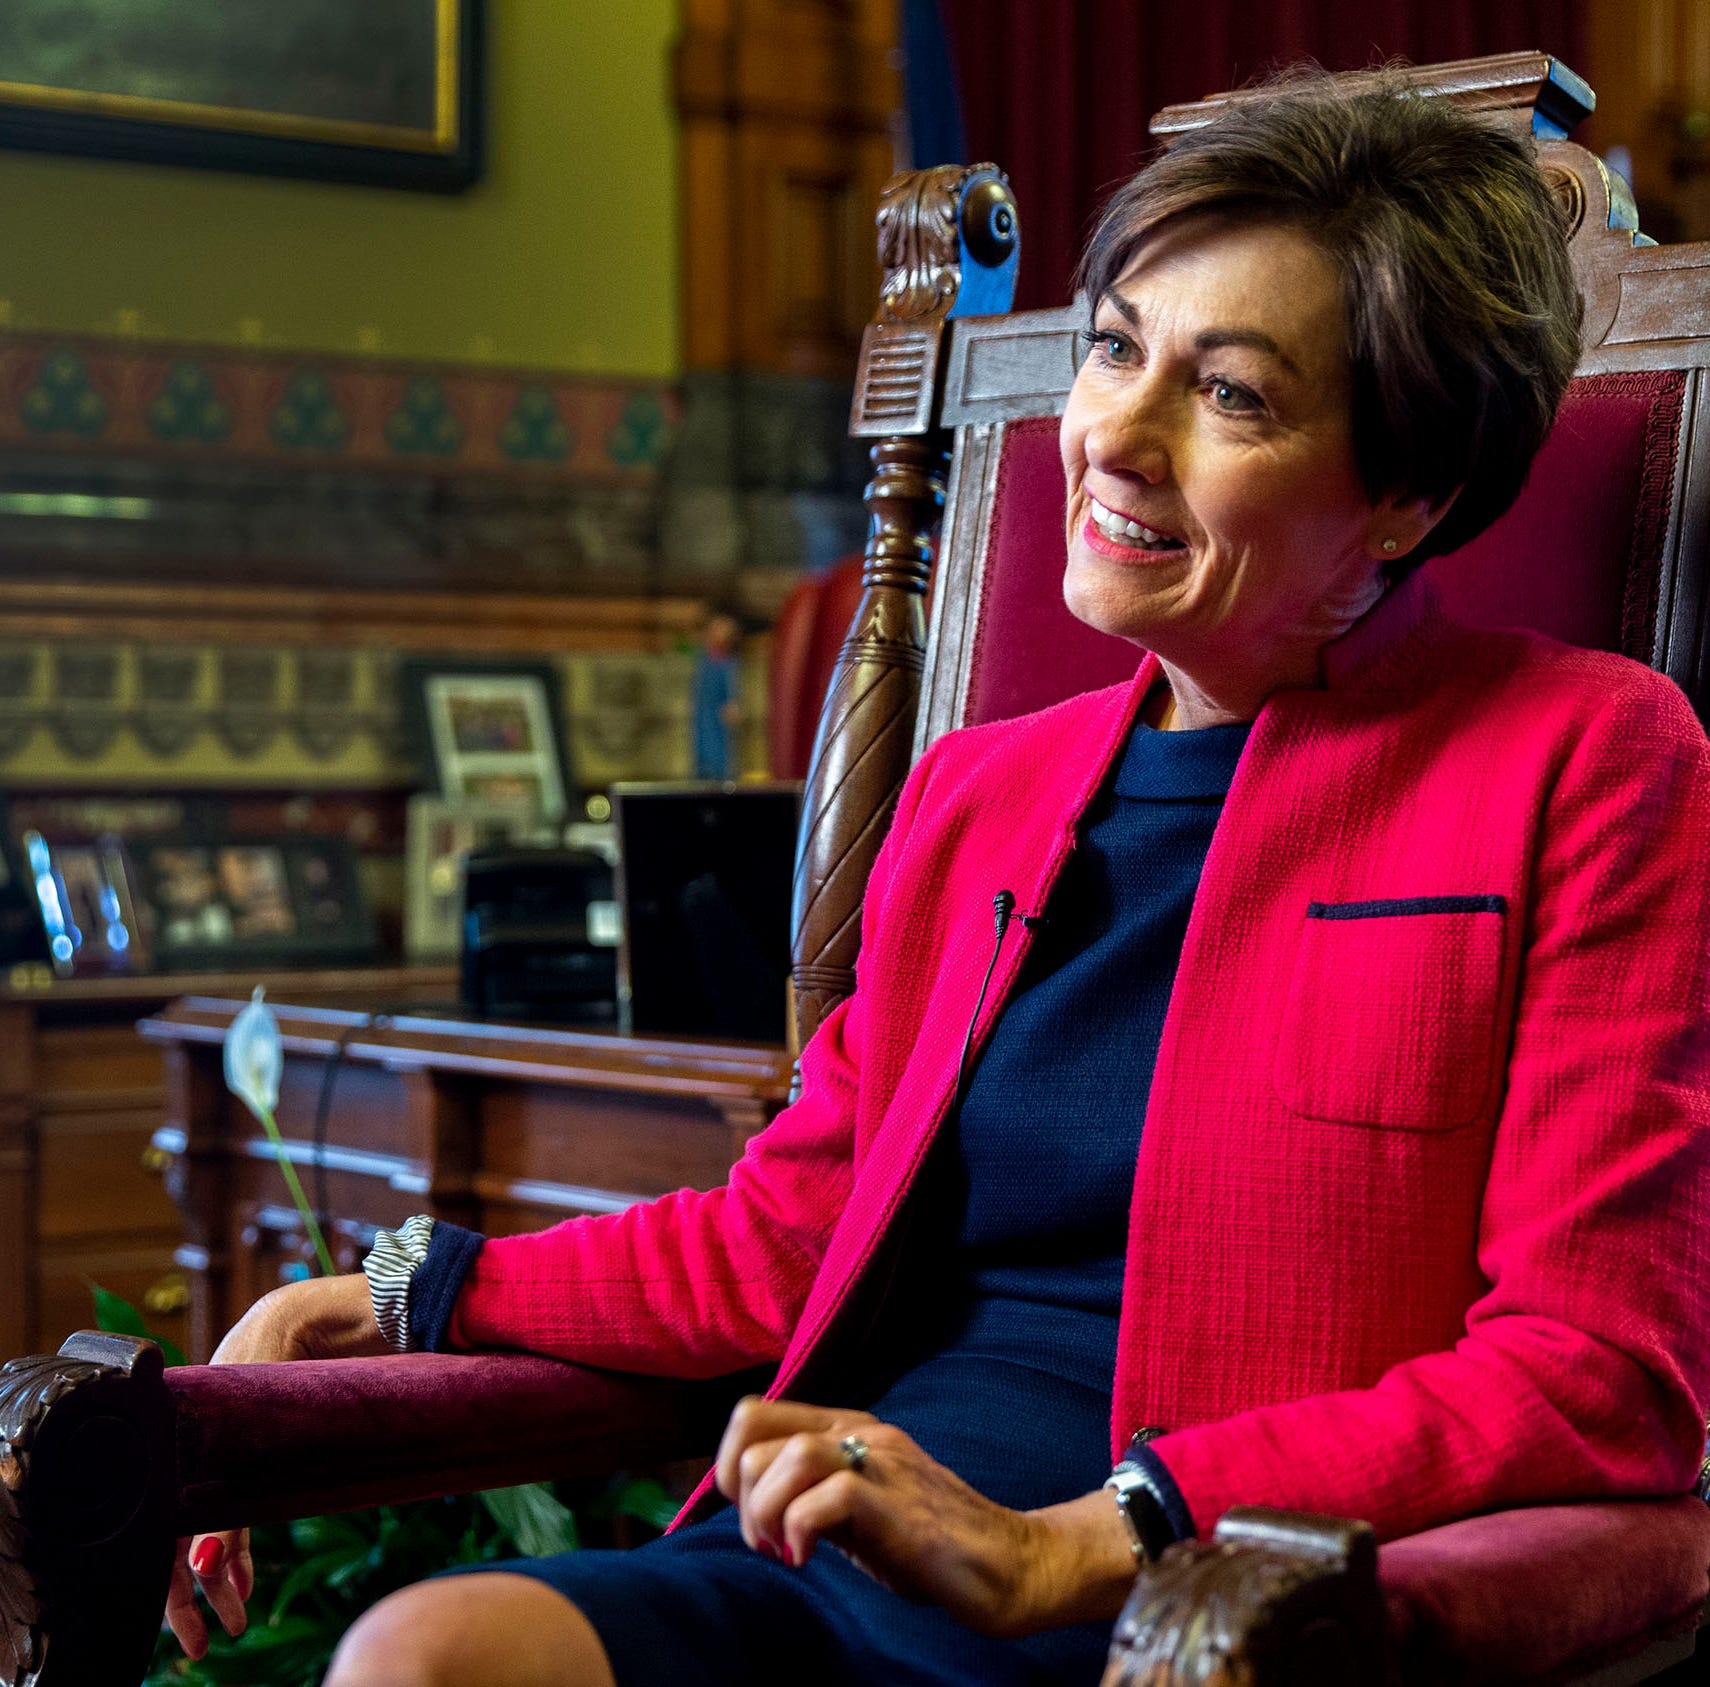 Kim Reynolds names new appointee to judge selection panel after law change